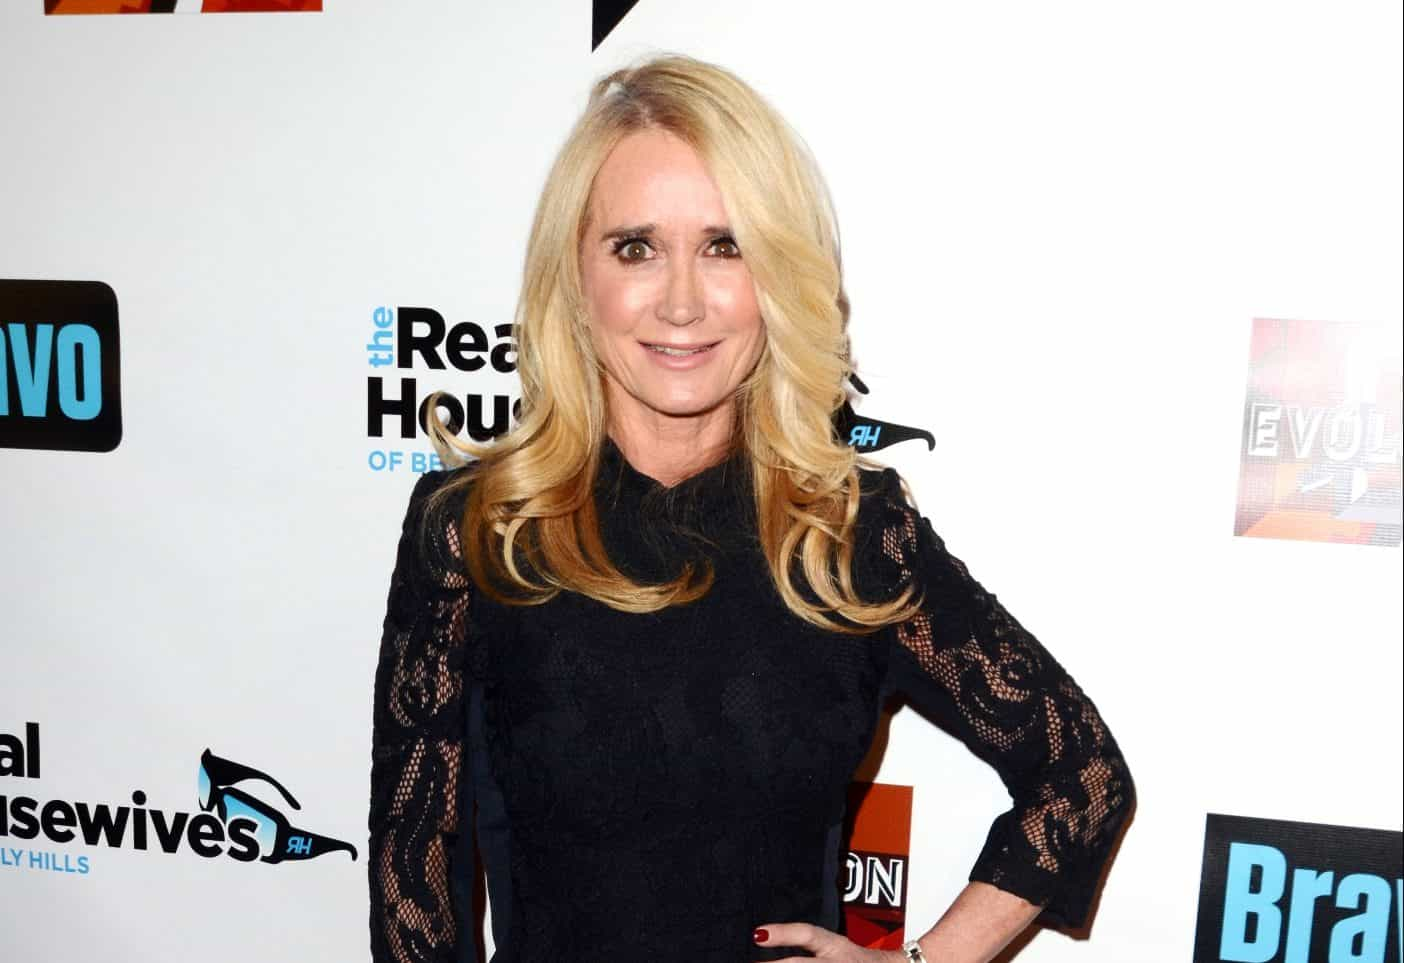 RHOBH's Kim Richards Speaks Out About Her Hospitalization for the First Time and Reveals Plans to Release an Autobiography